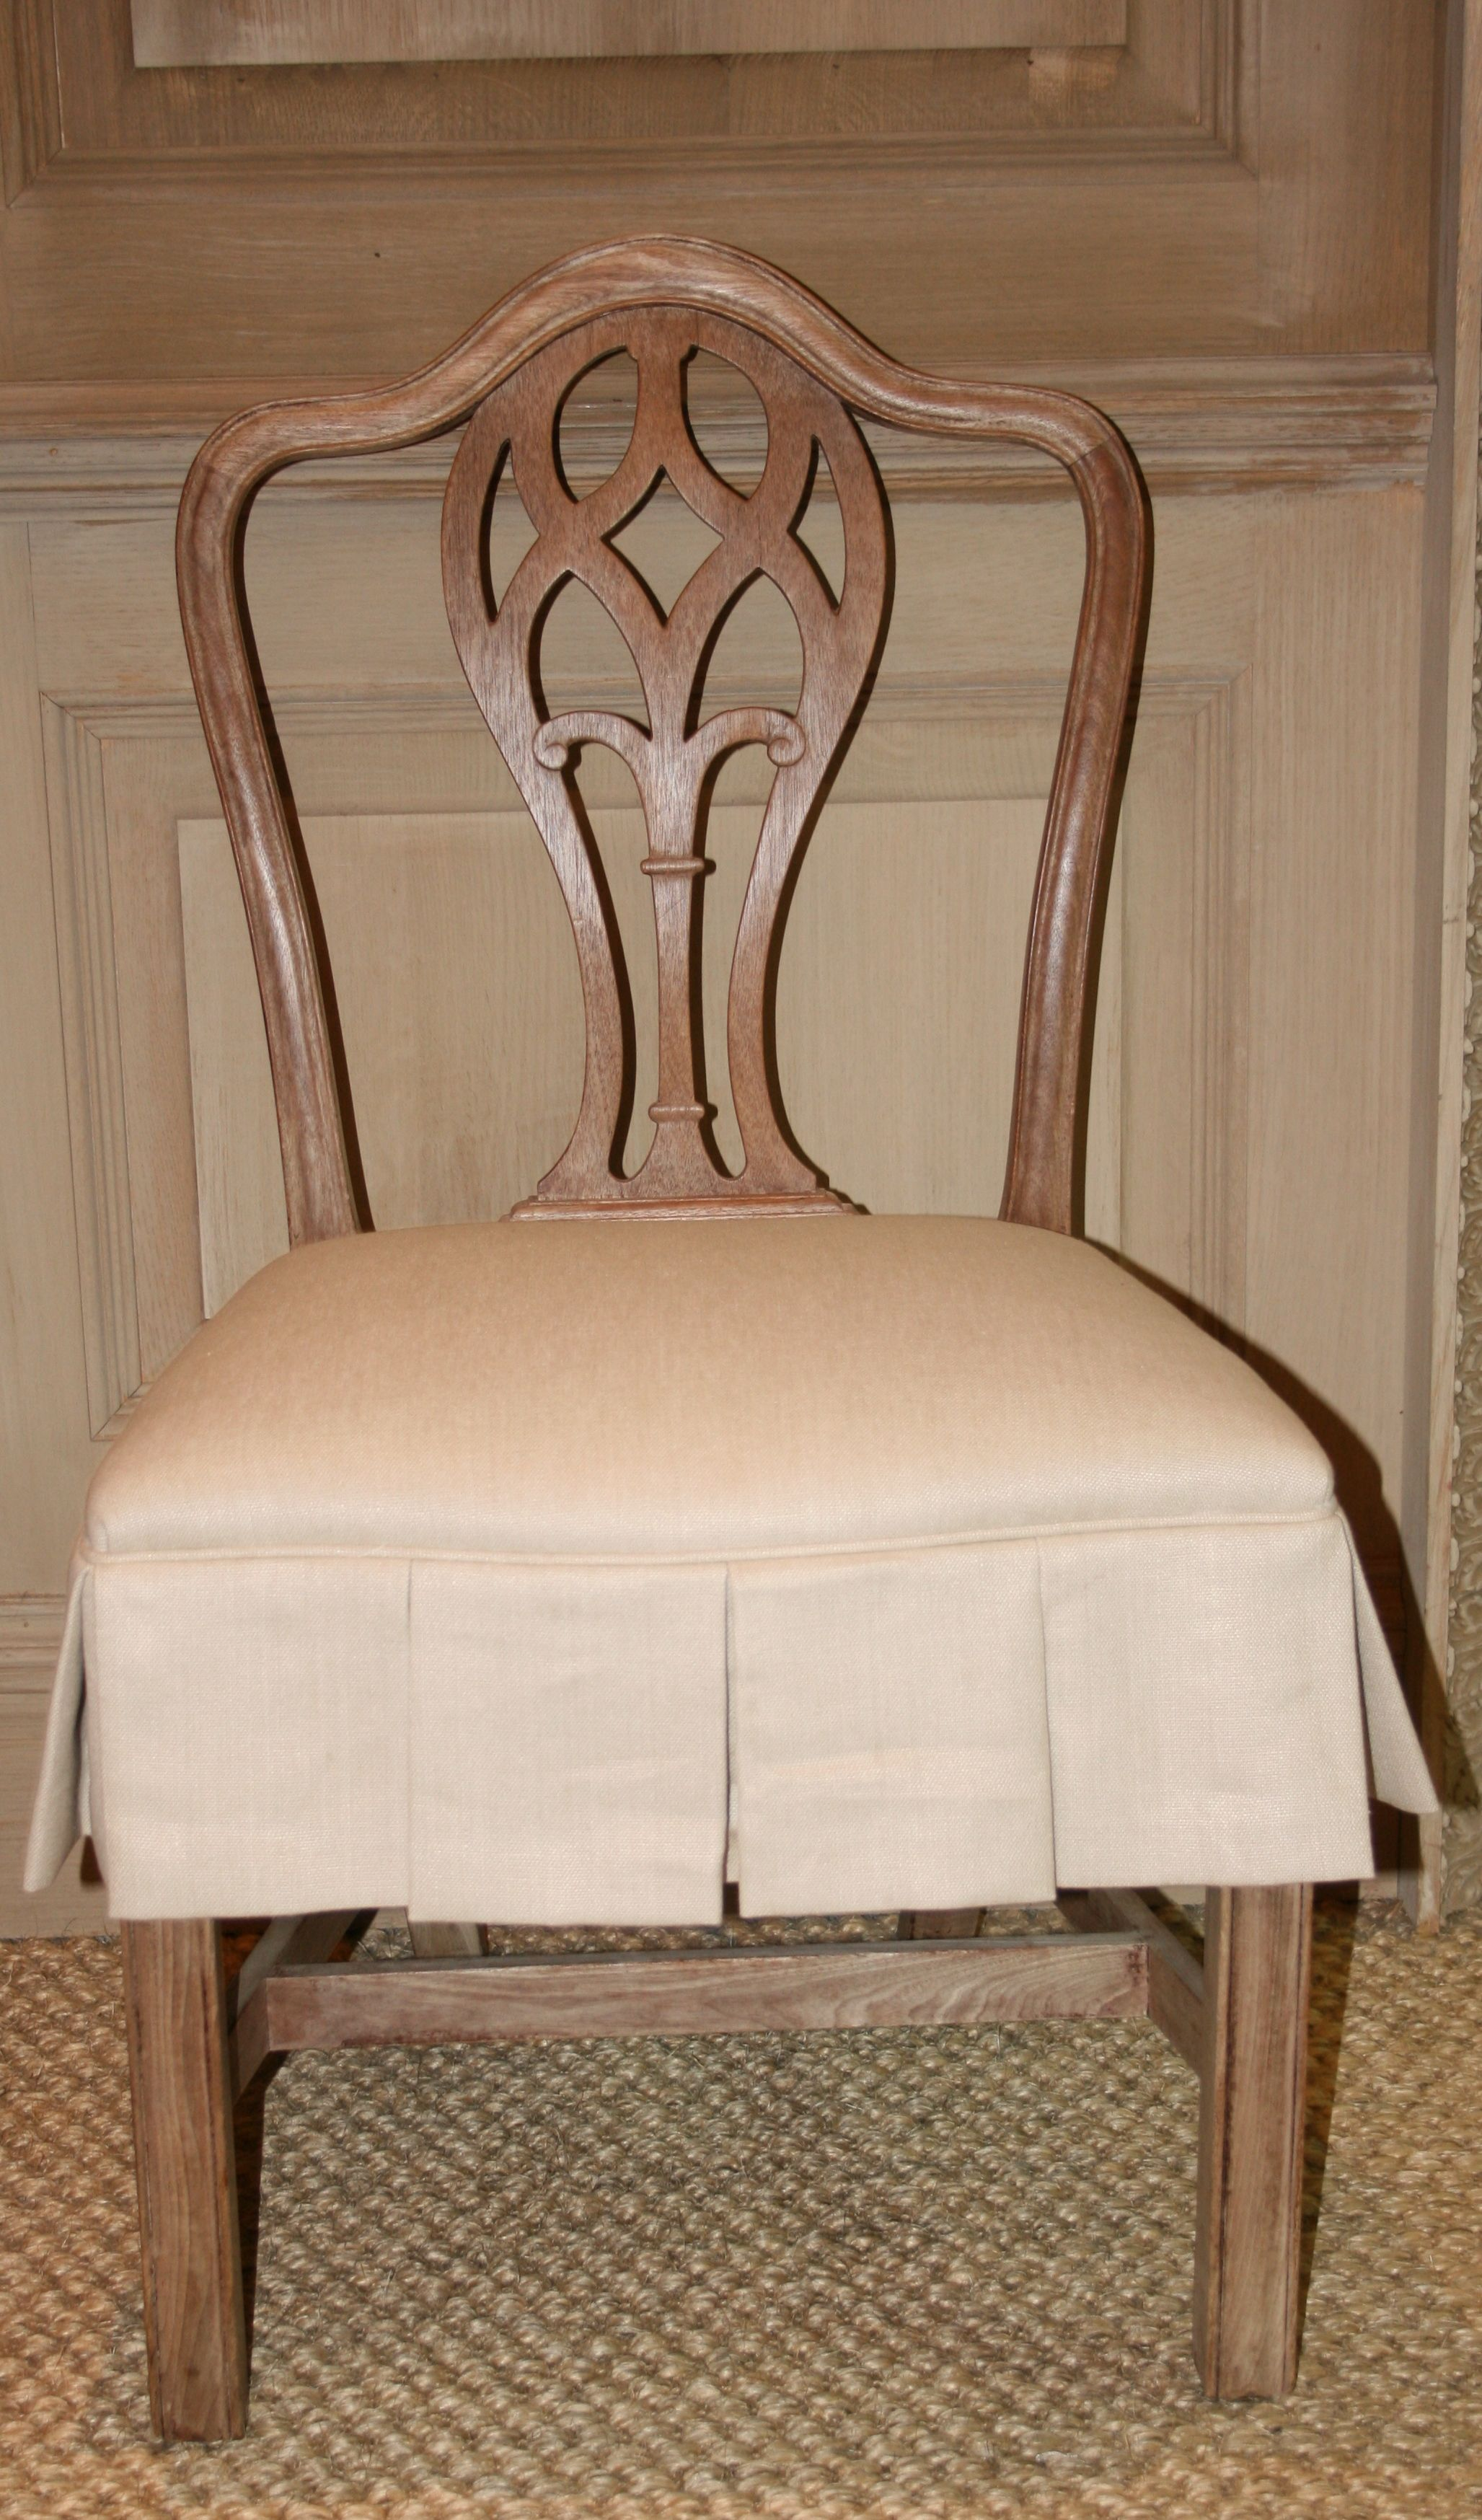 Jcpenney Dining Chair Covers Cover Hire Portsmouth With Slipcovered Seat Slipcovers